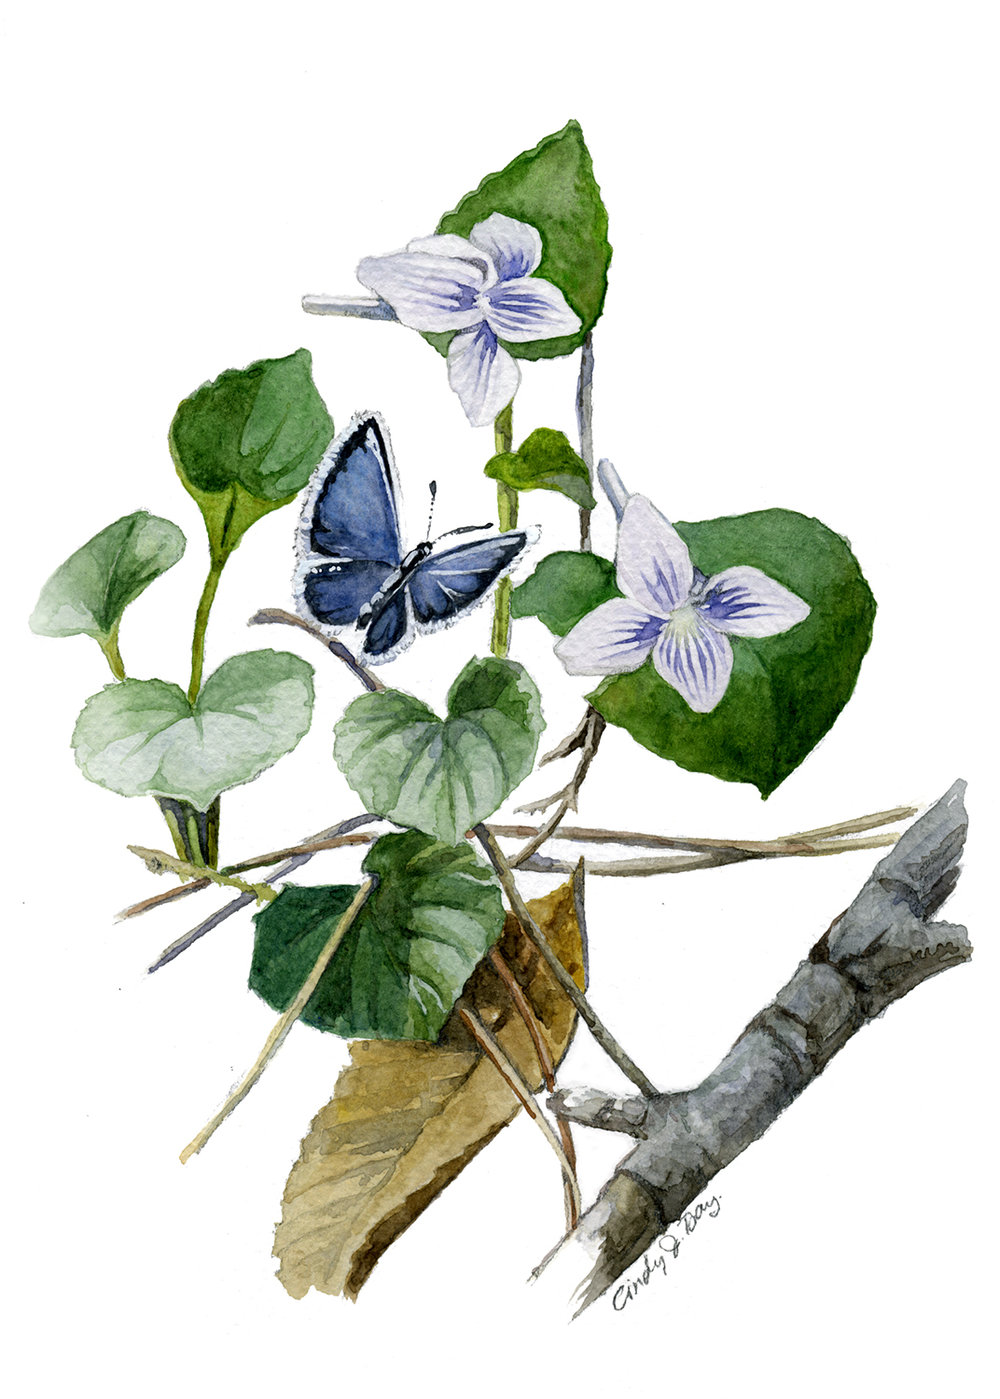 Long Spurred Violets